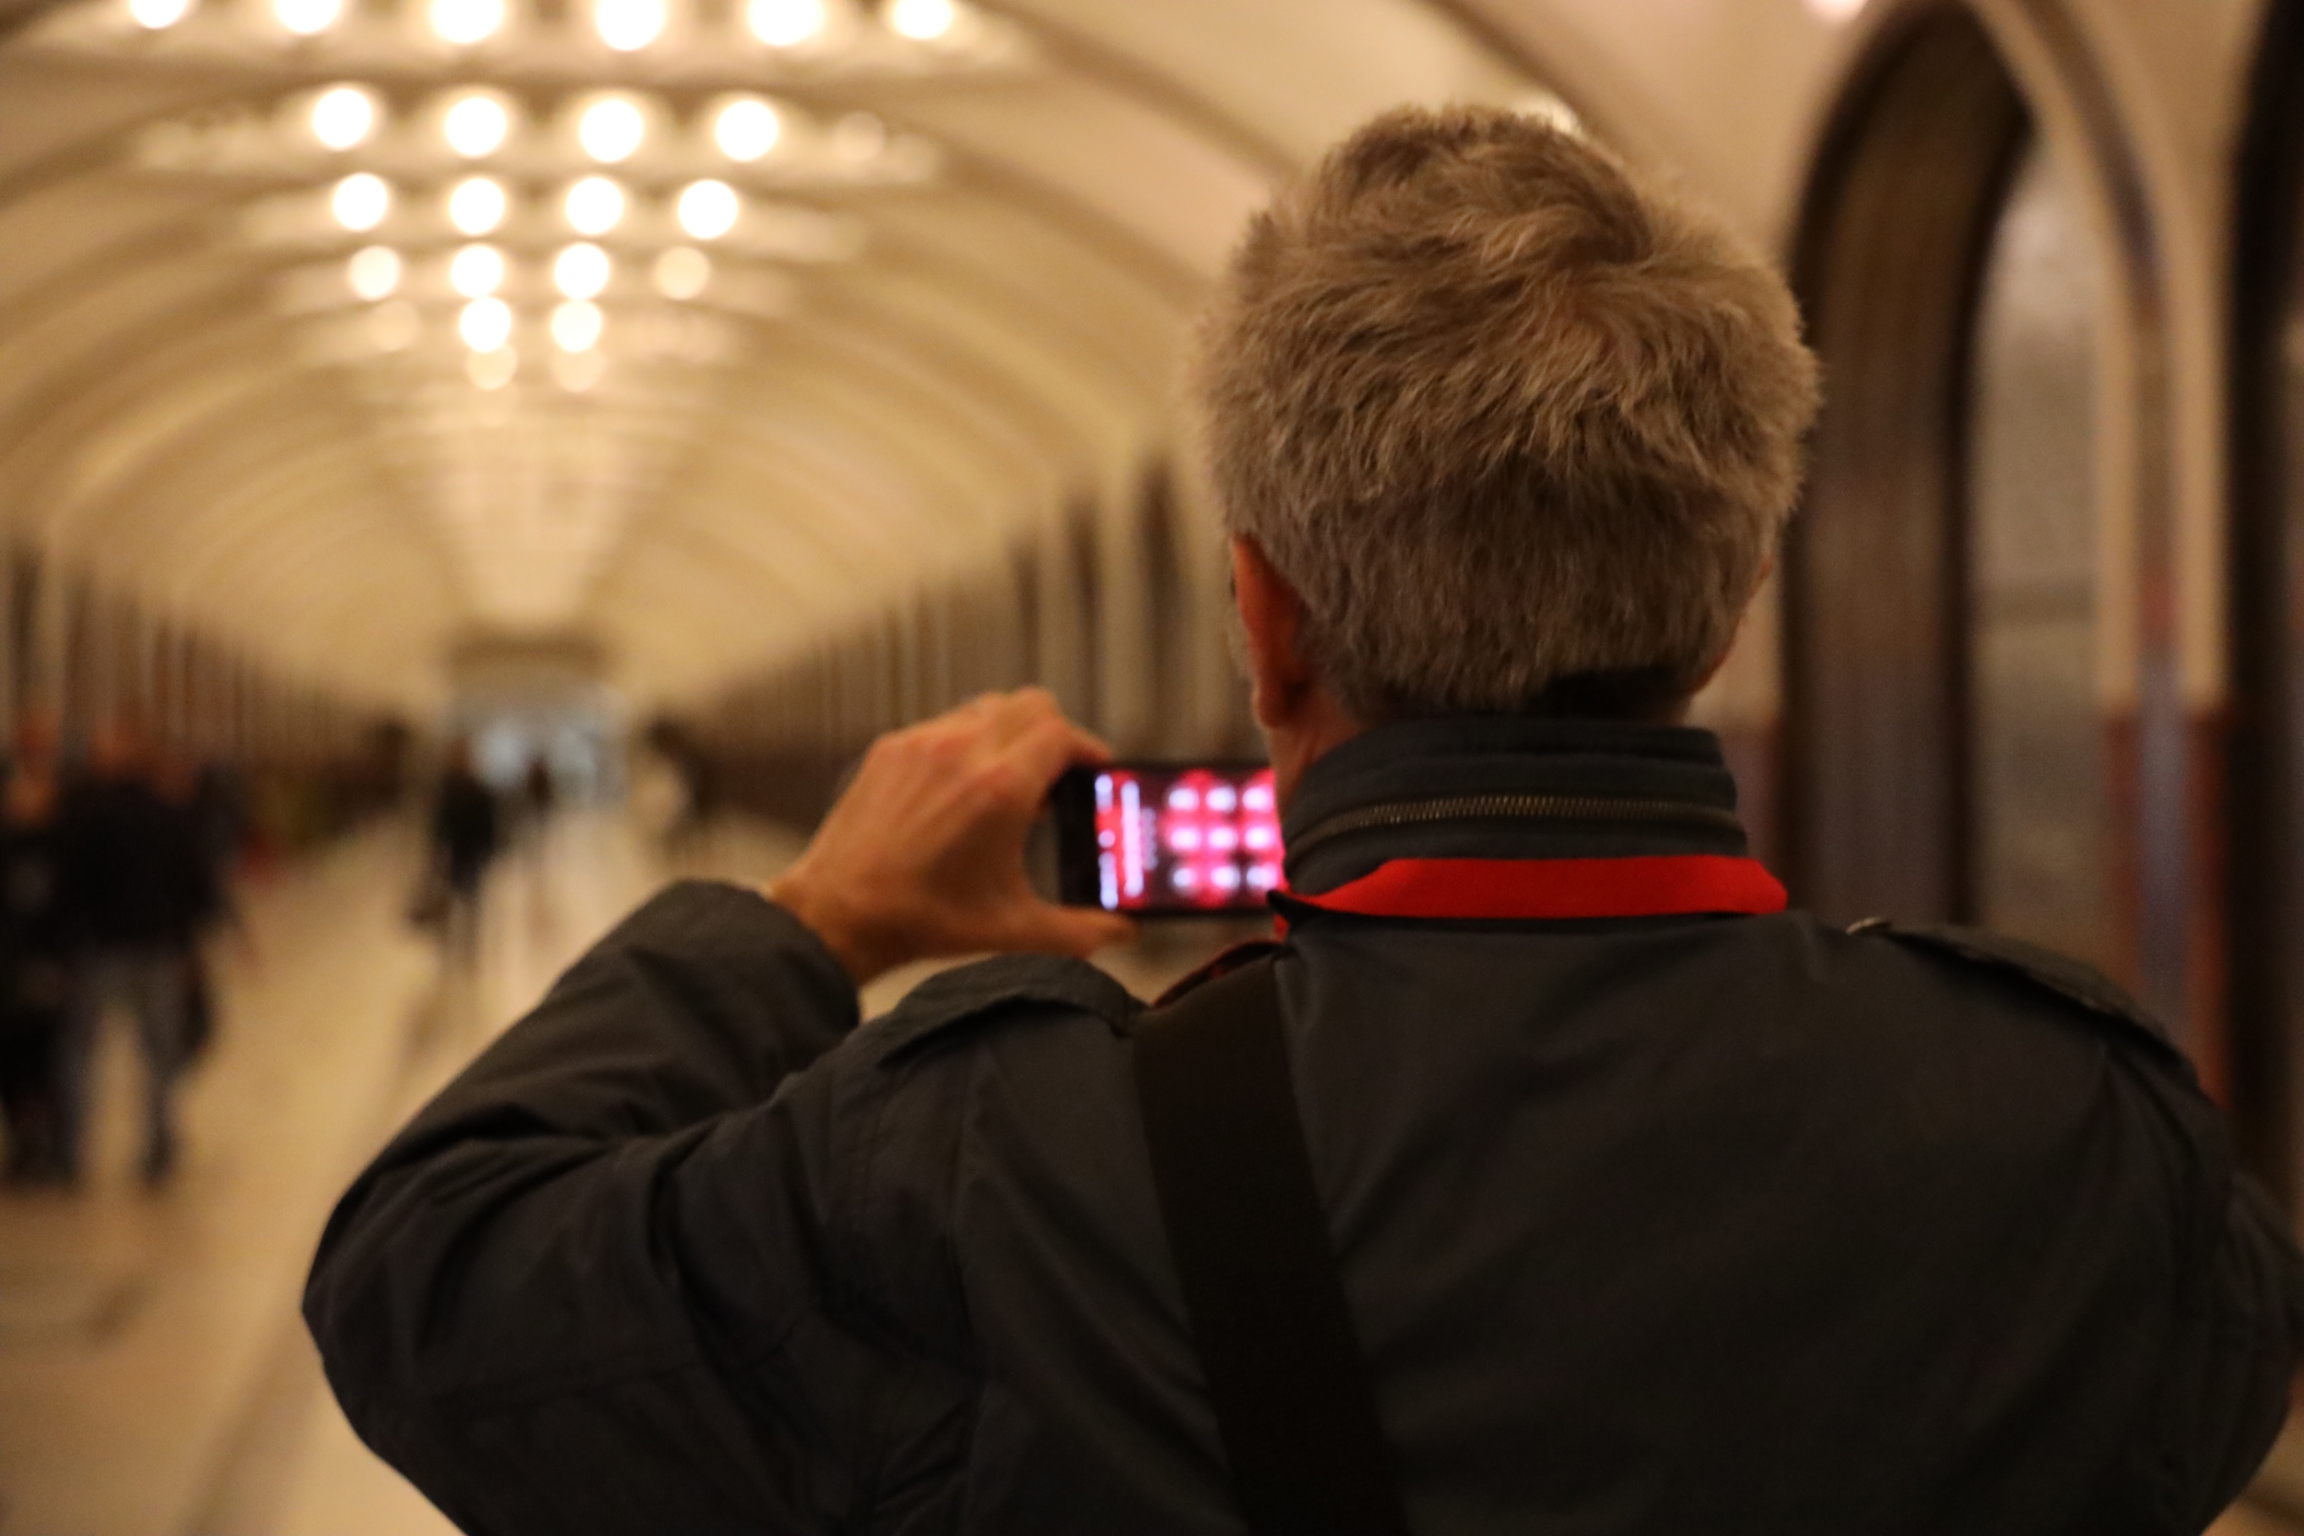 A man takes a photo of a train station on his cell phone